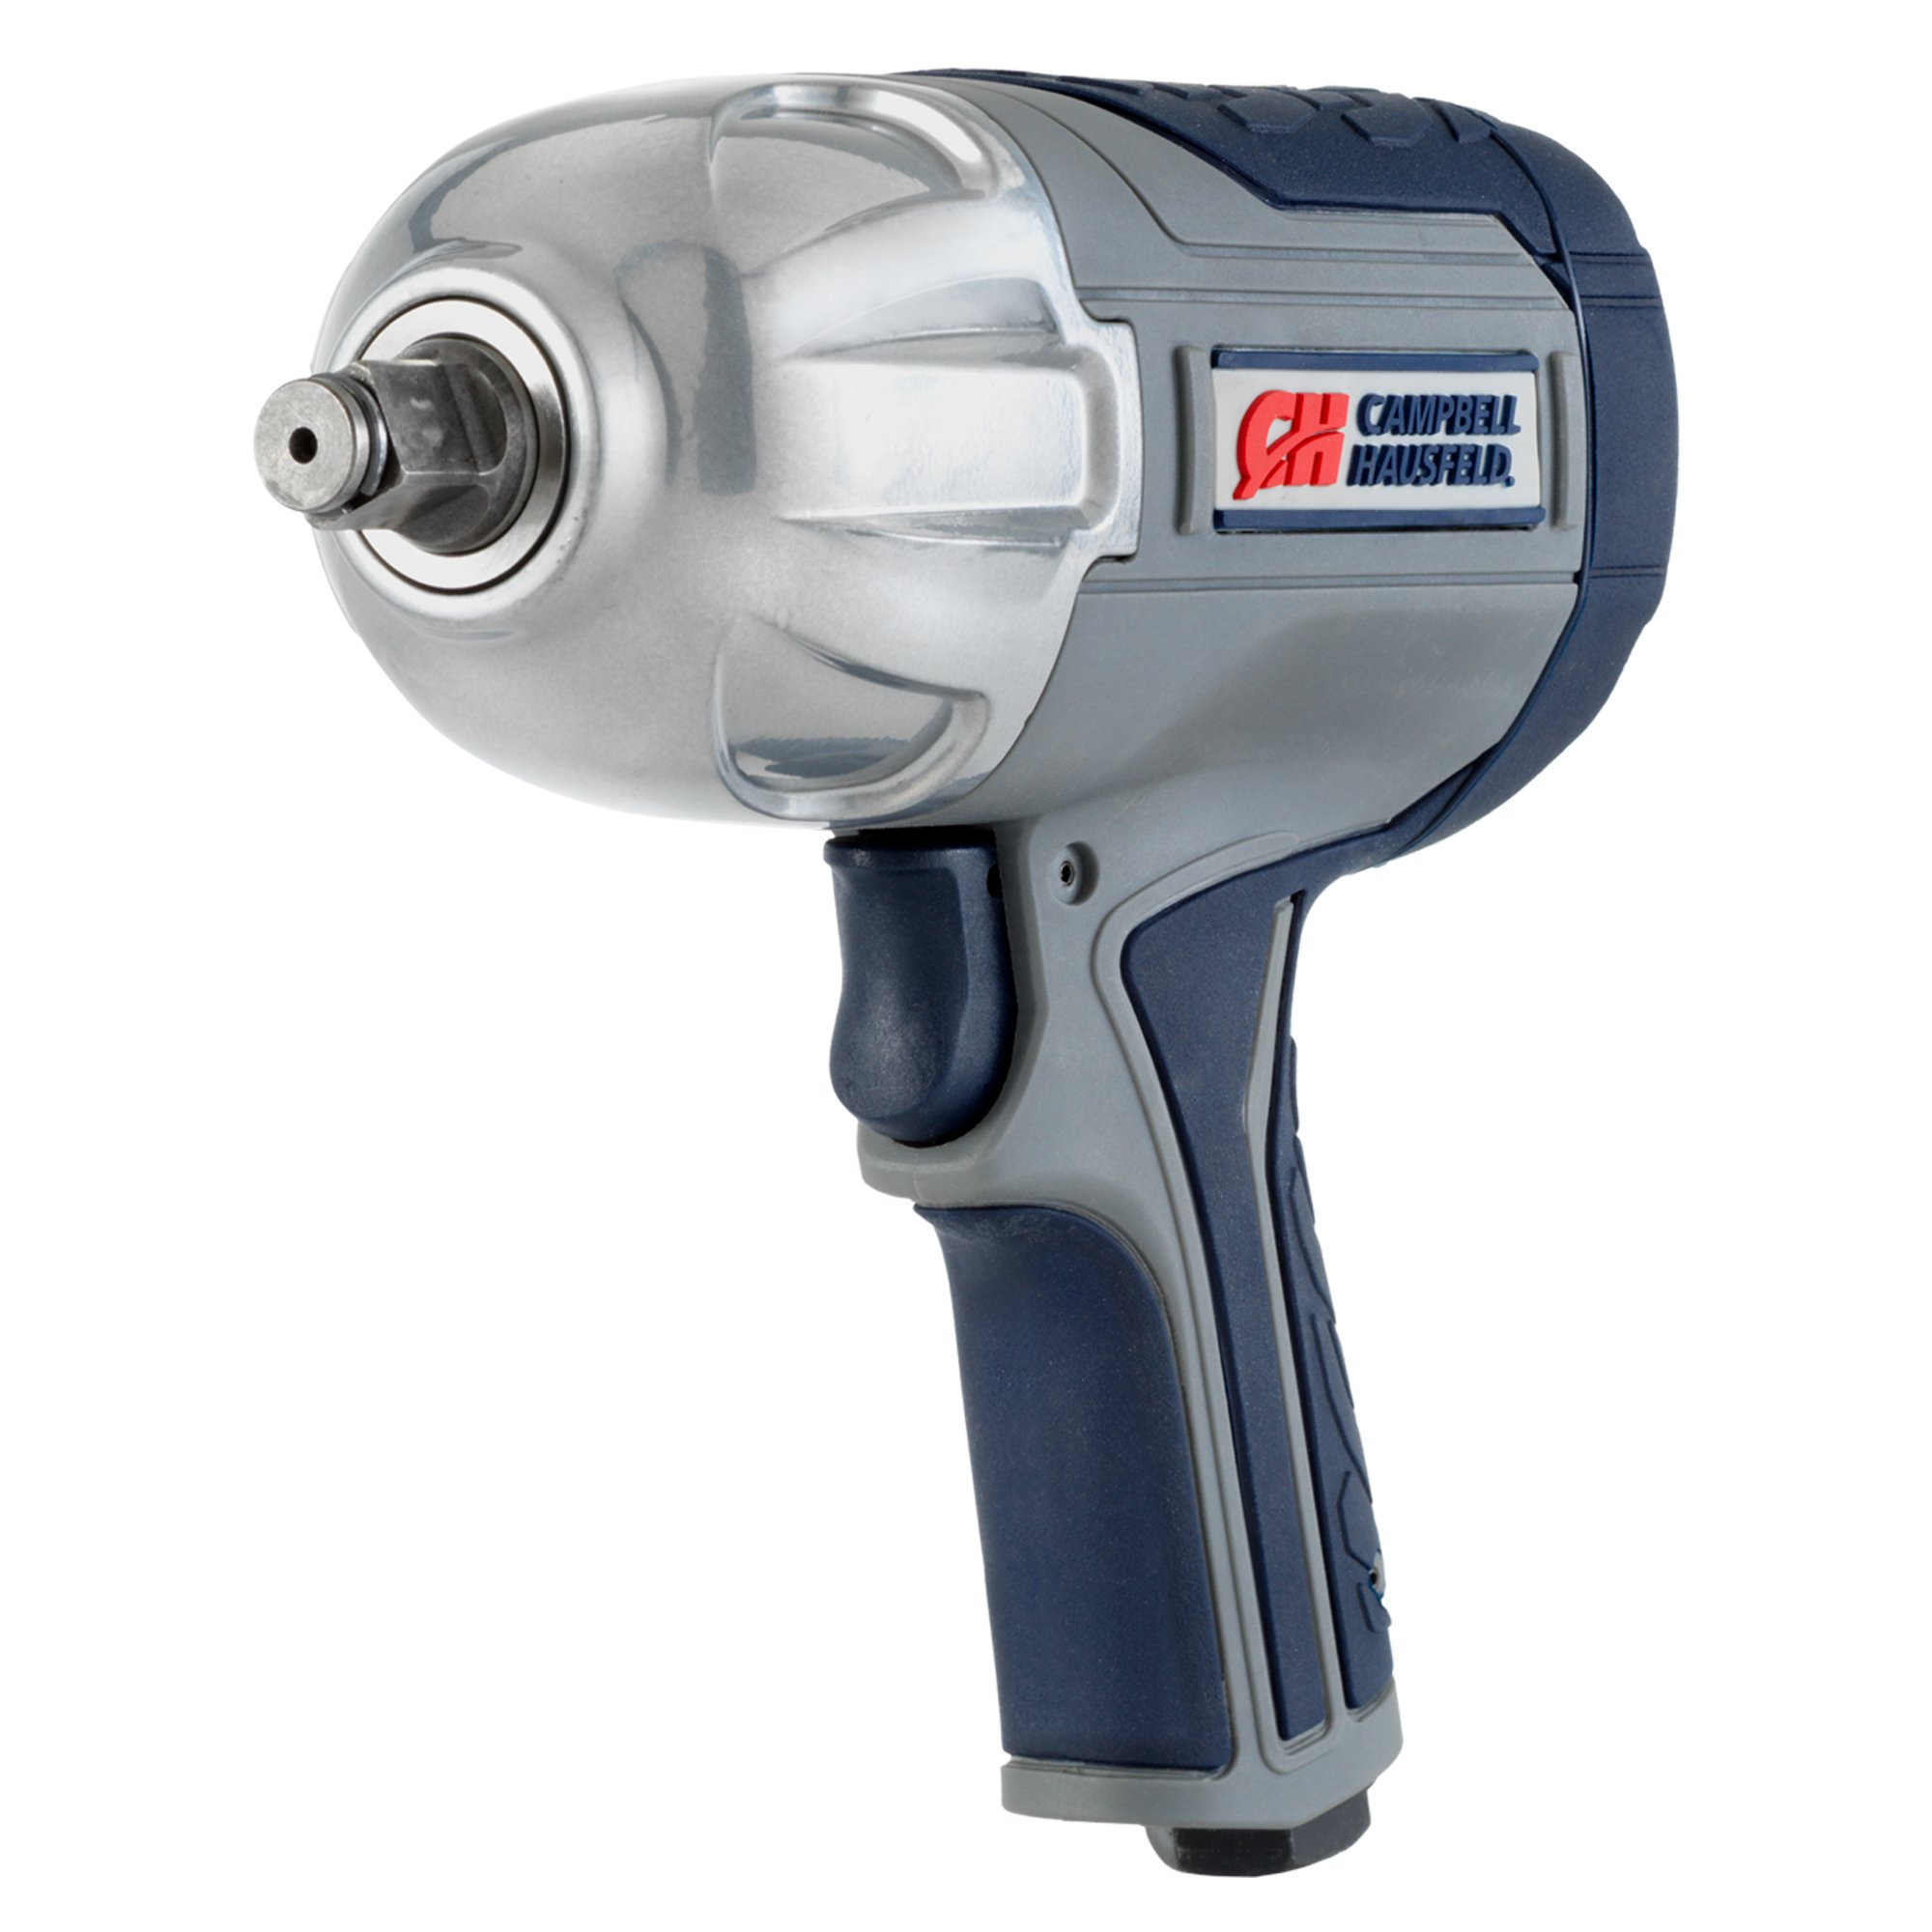 Air Impact Wrench - Twin Hammer 1/2'' Impact Driver w/ Composite Body and Comfort Grip (Campbell Hausfeld XT002000)